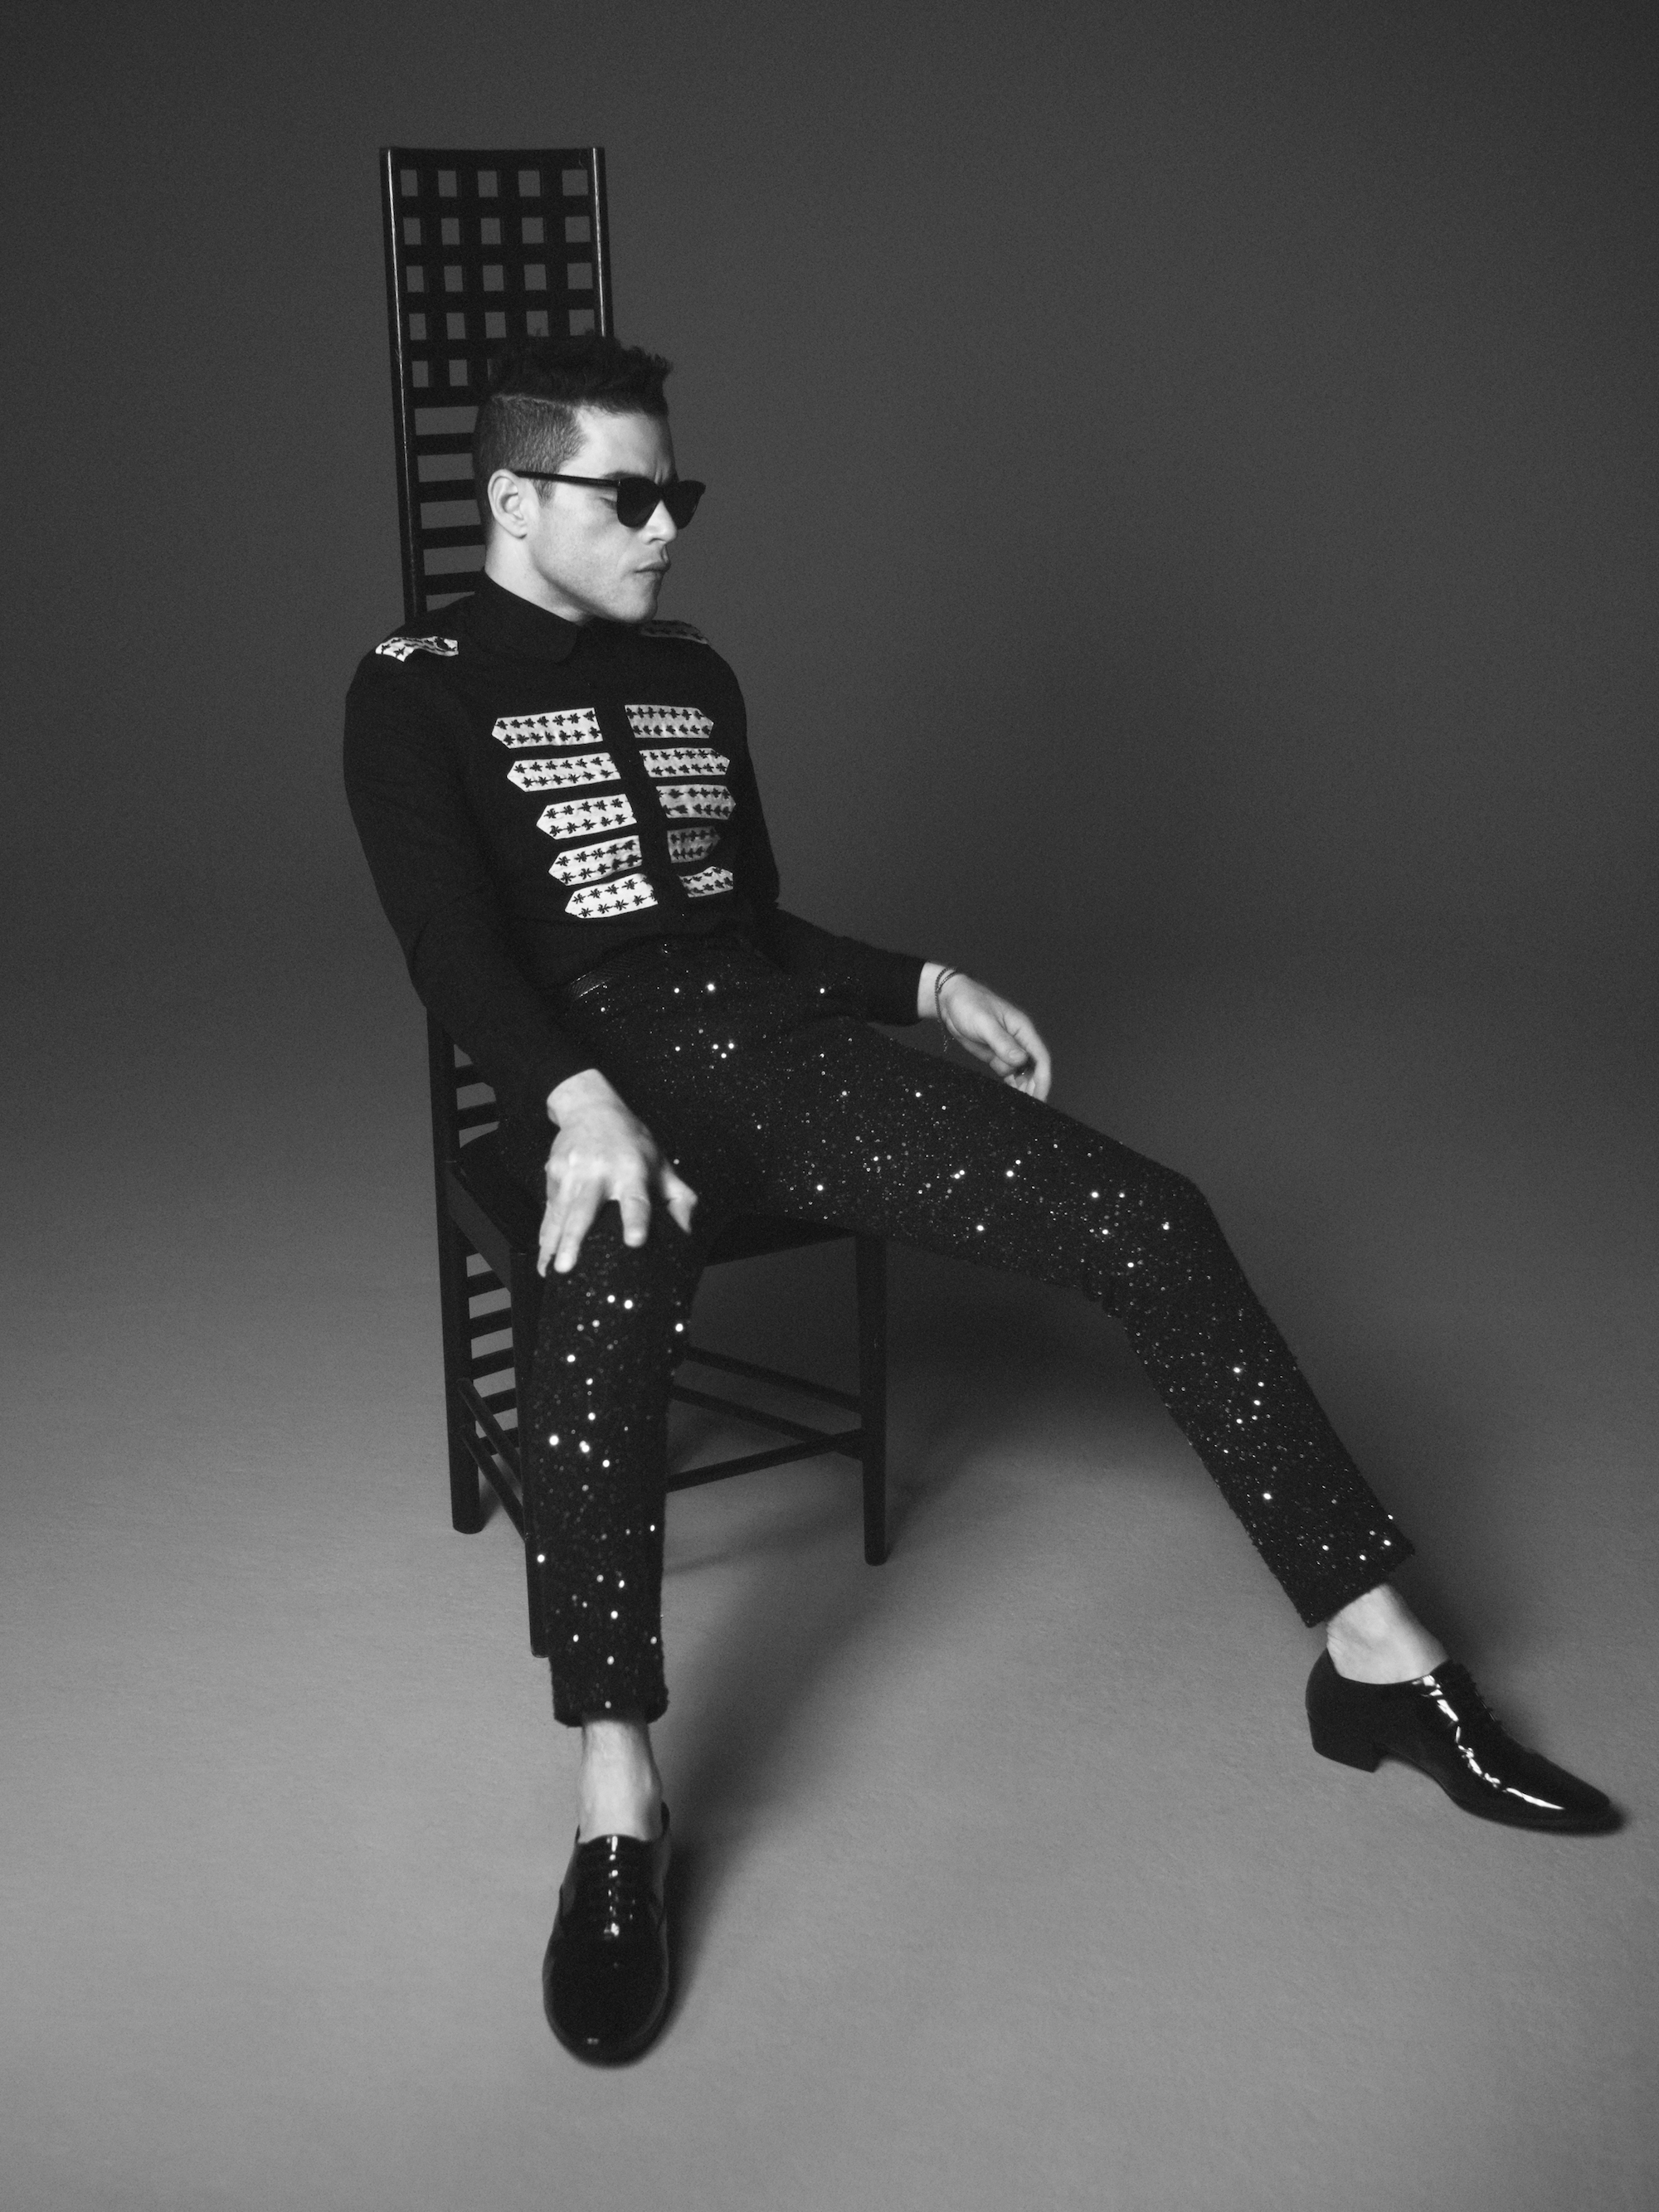 Rami Malek has been announced as the new face of Saint Laurent's menswear campaign sequin trousers